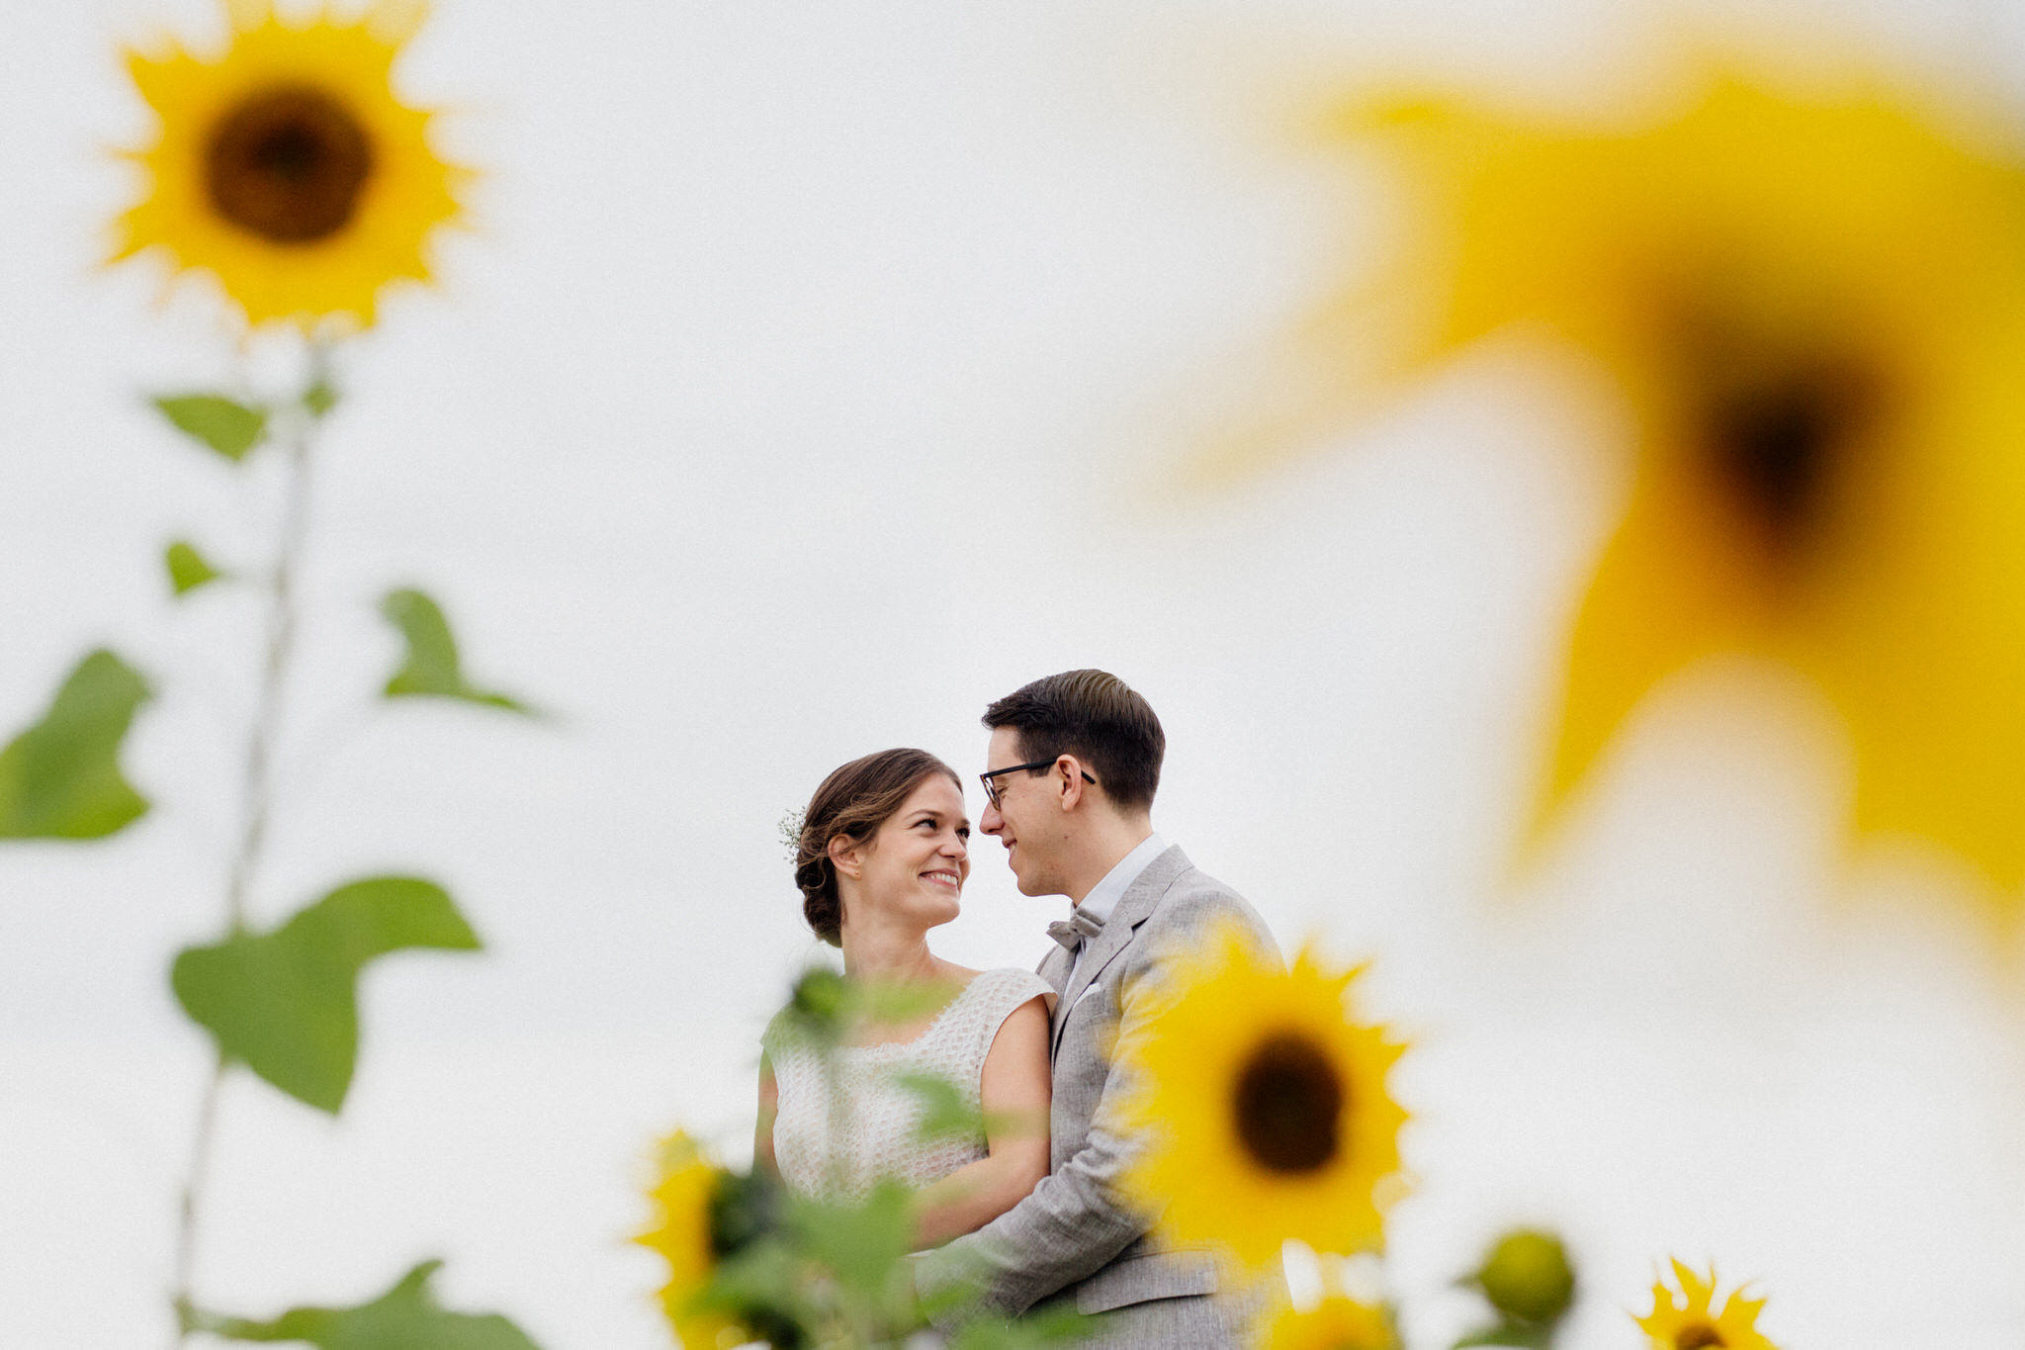 sunflowers wedding photos